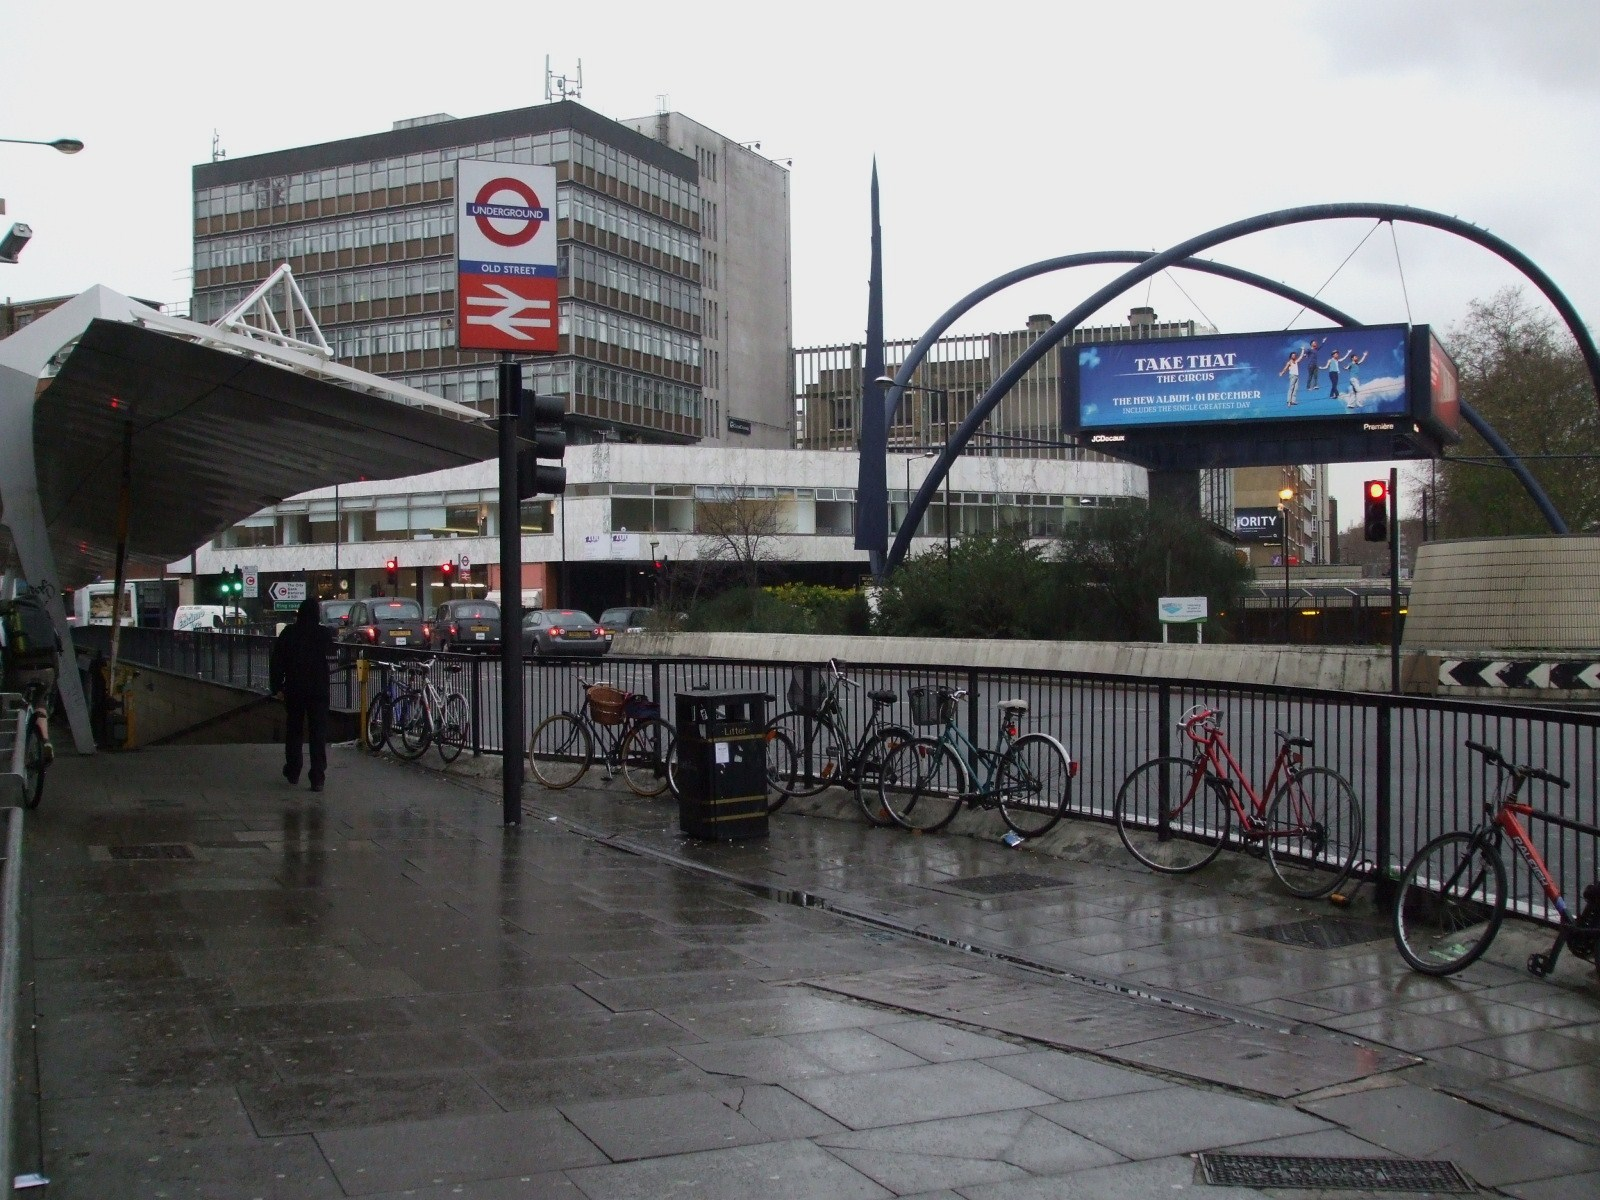 Road closures in Old Street spark concerns of increased class gap in Islington